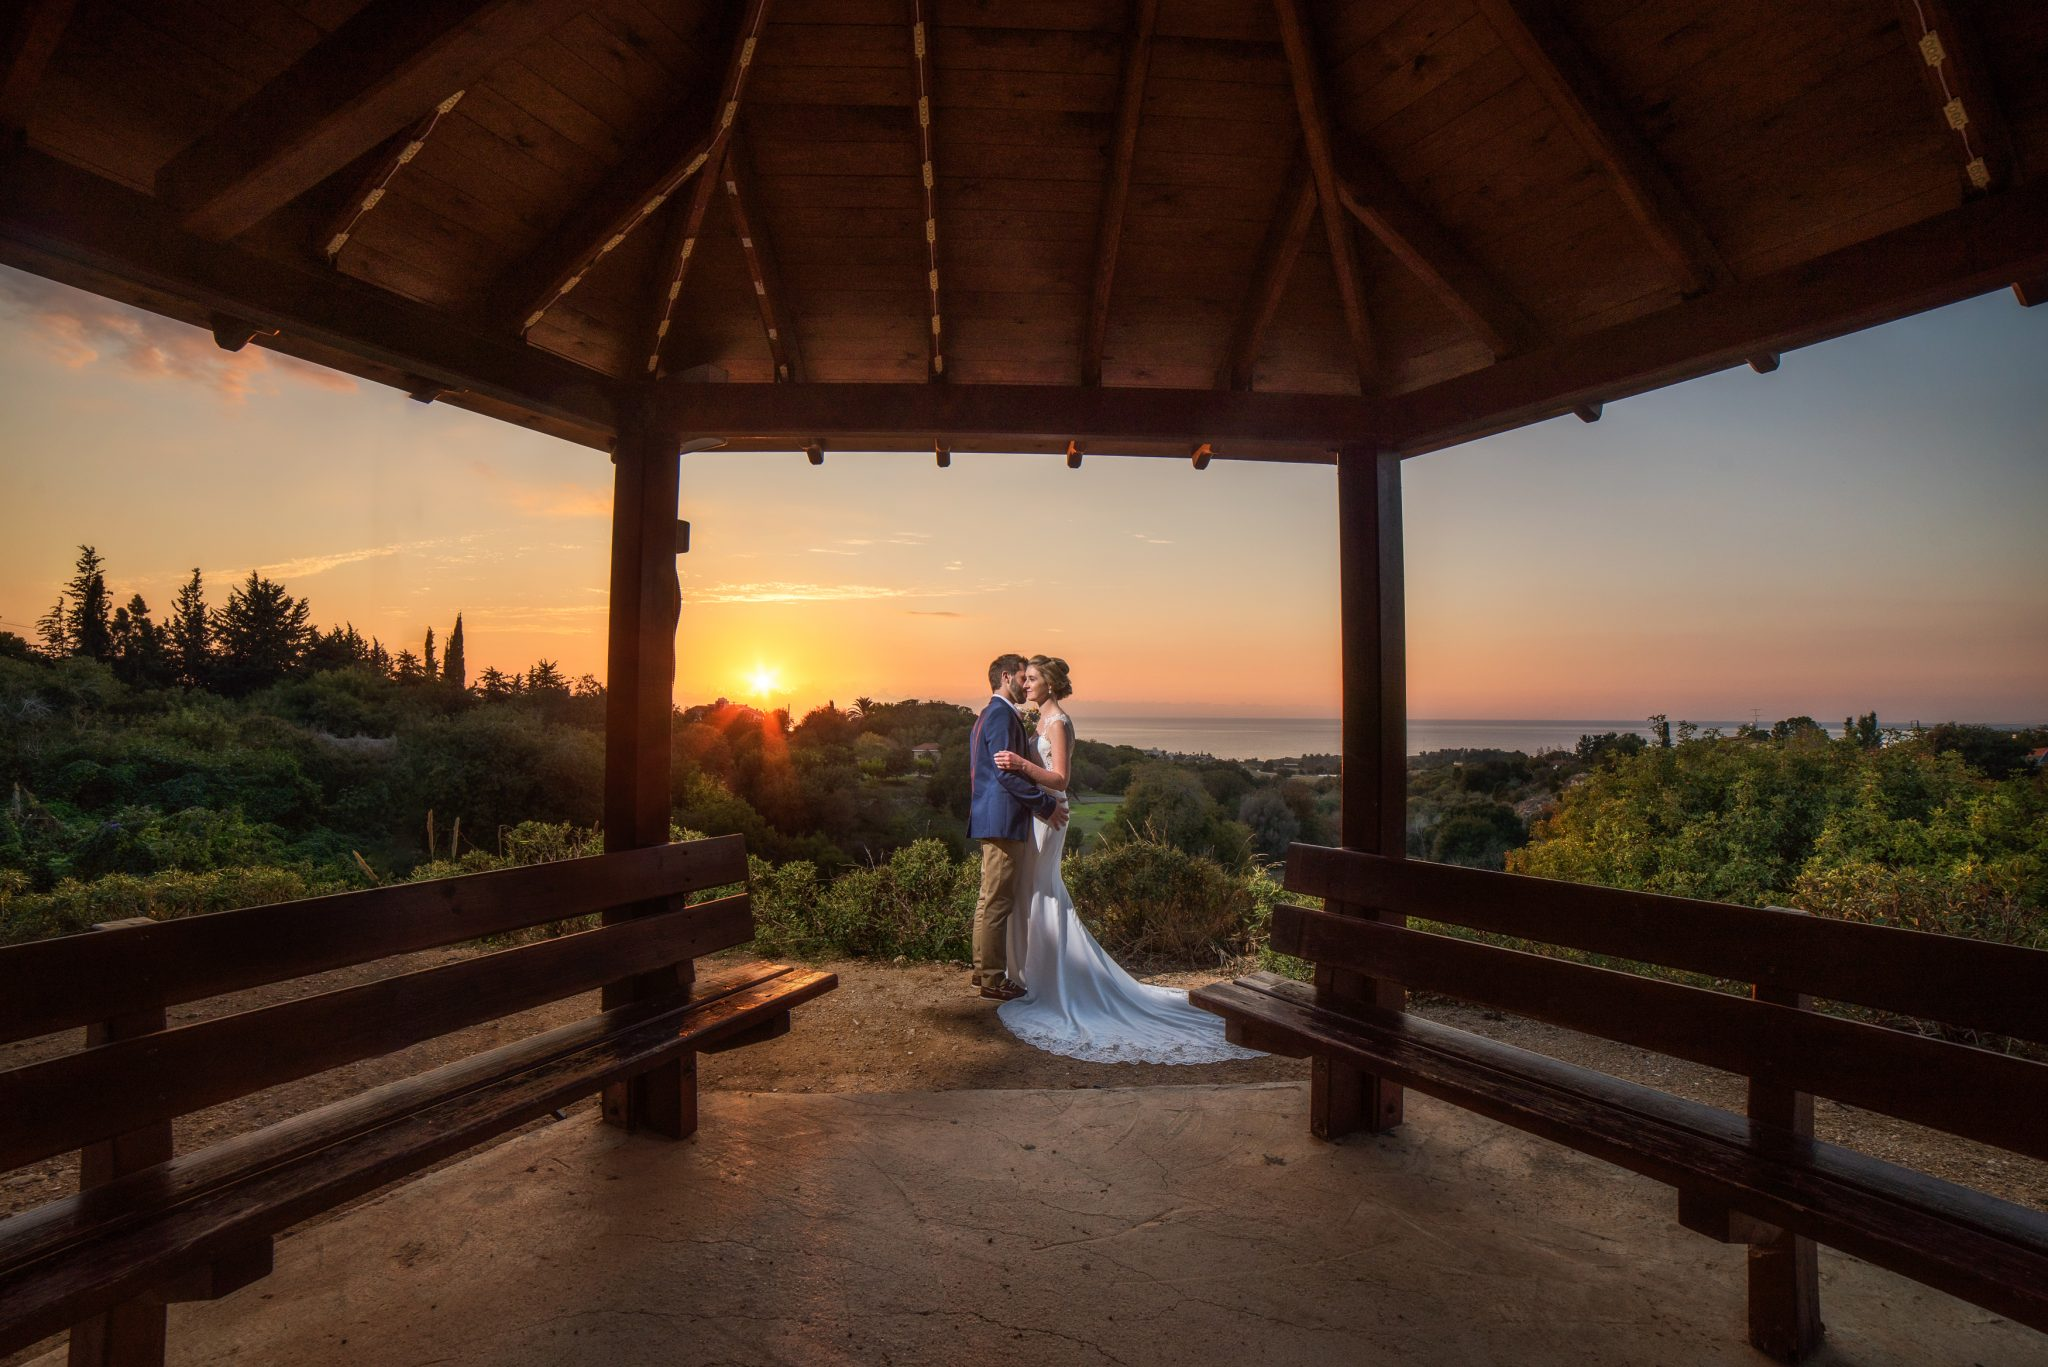 Great place for Wedding photos Cyprus.